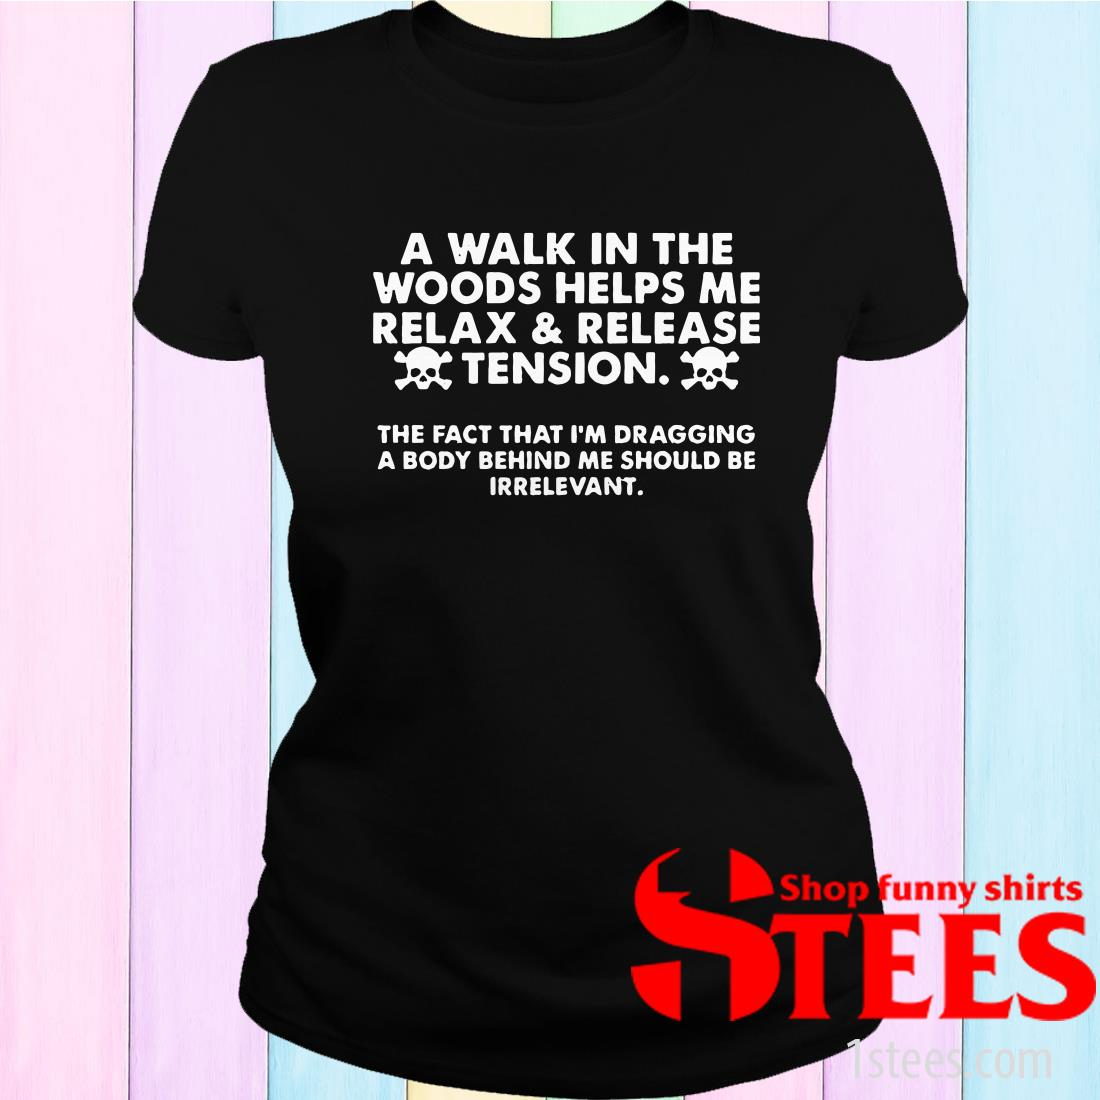 A Walk In The Woods Helps Me Relax And Release Tension Women's T-Shirt